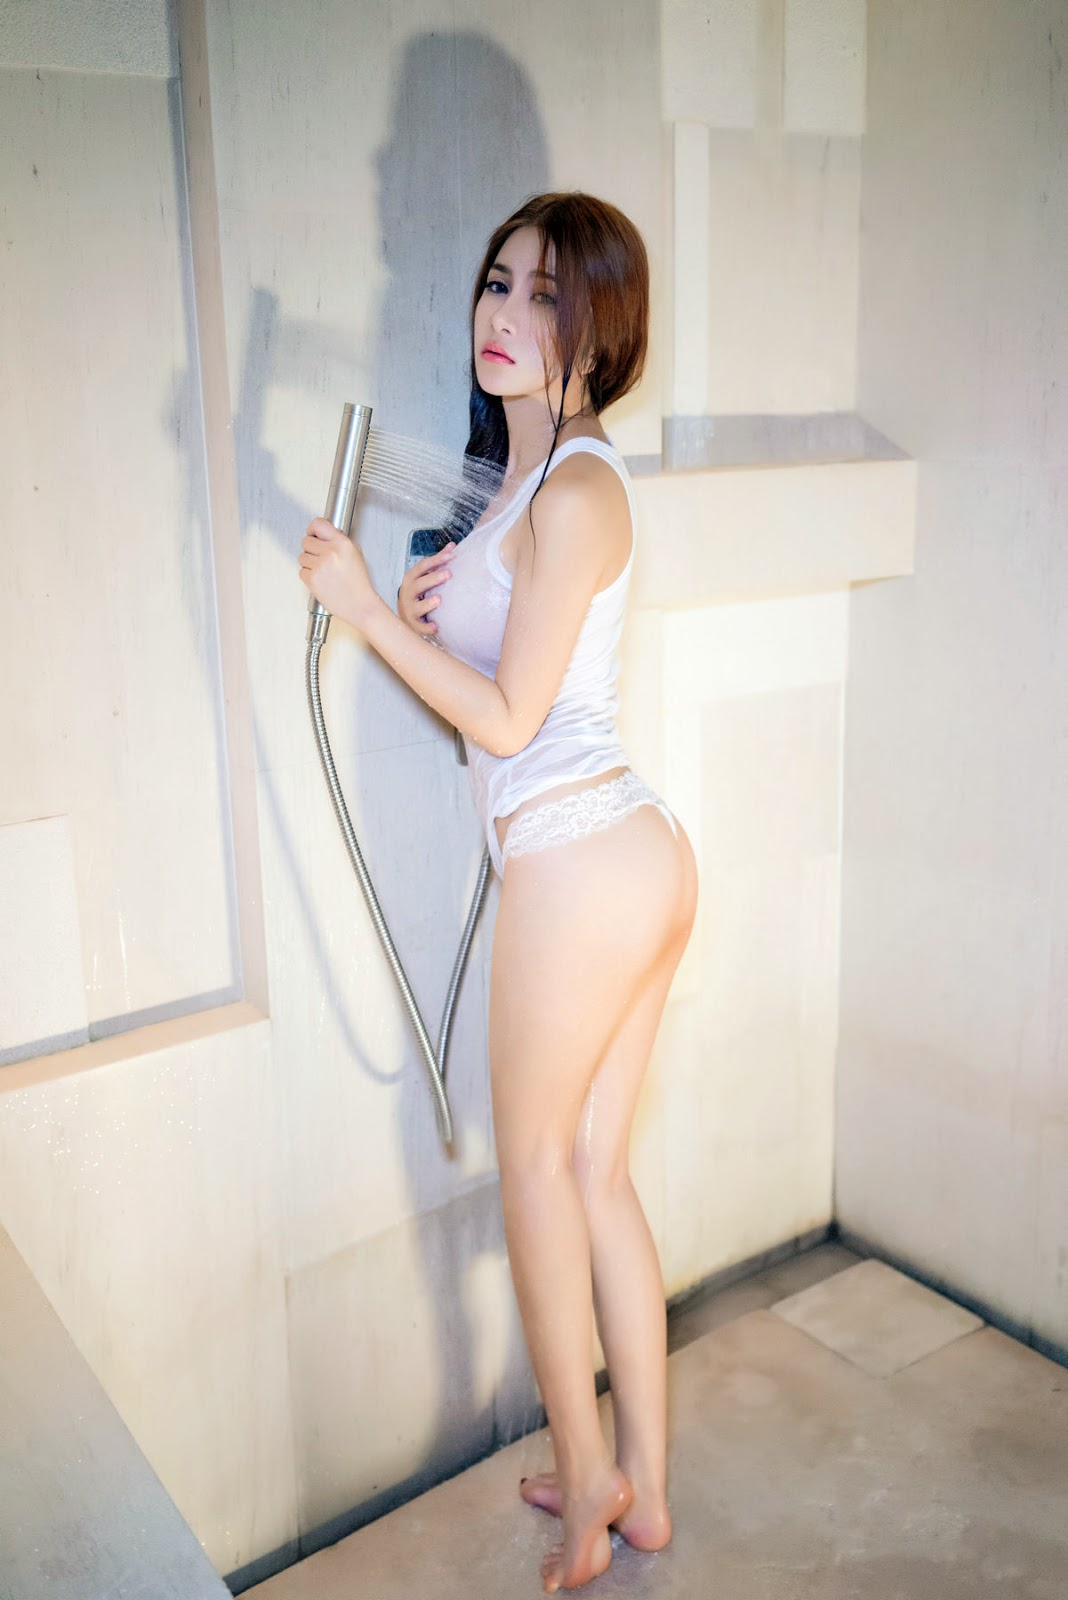 naked squat asian girls from behind